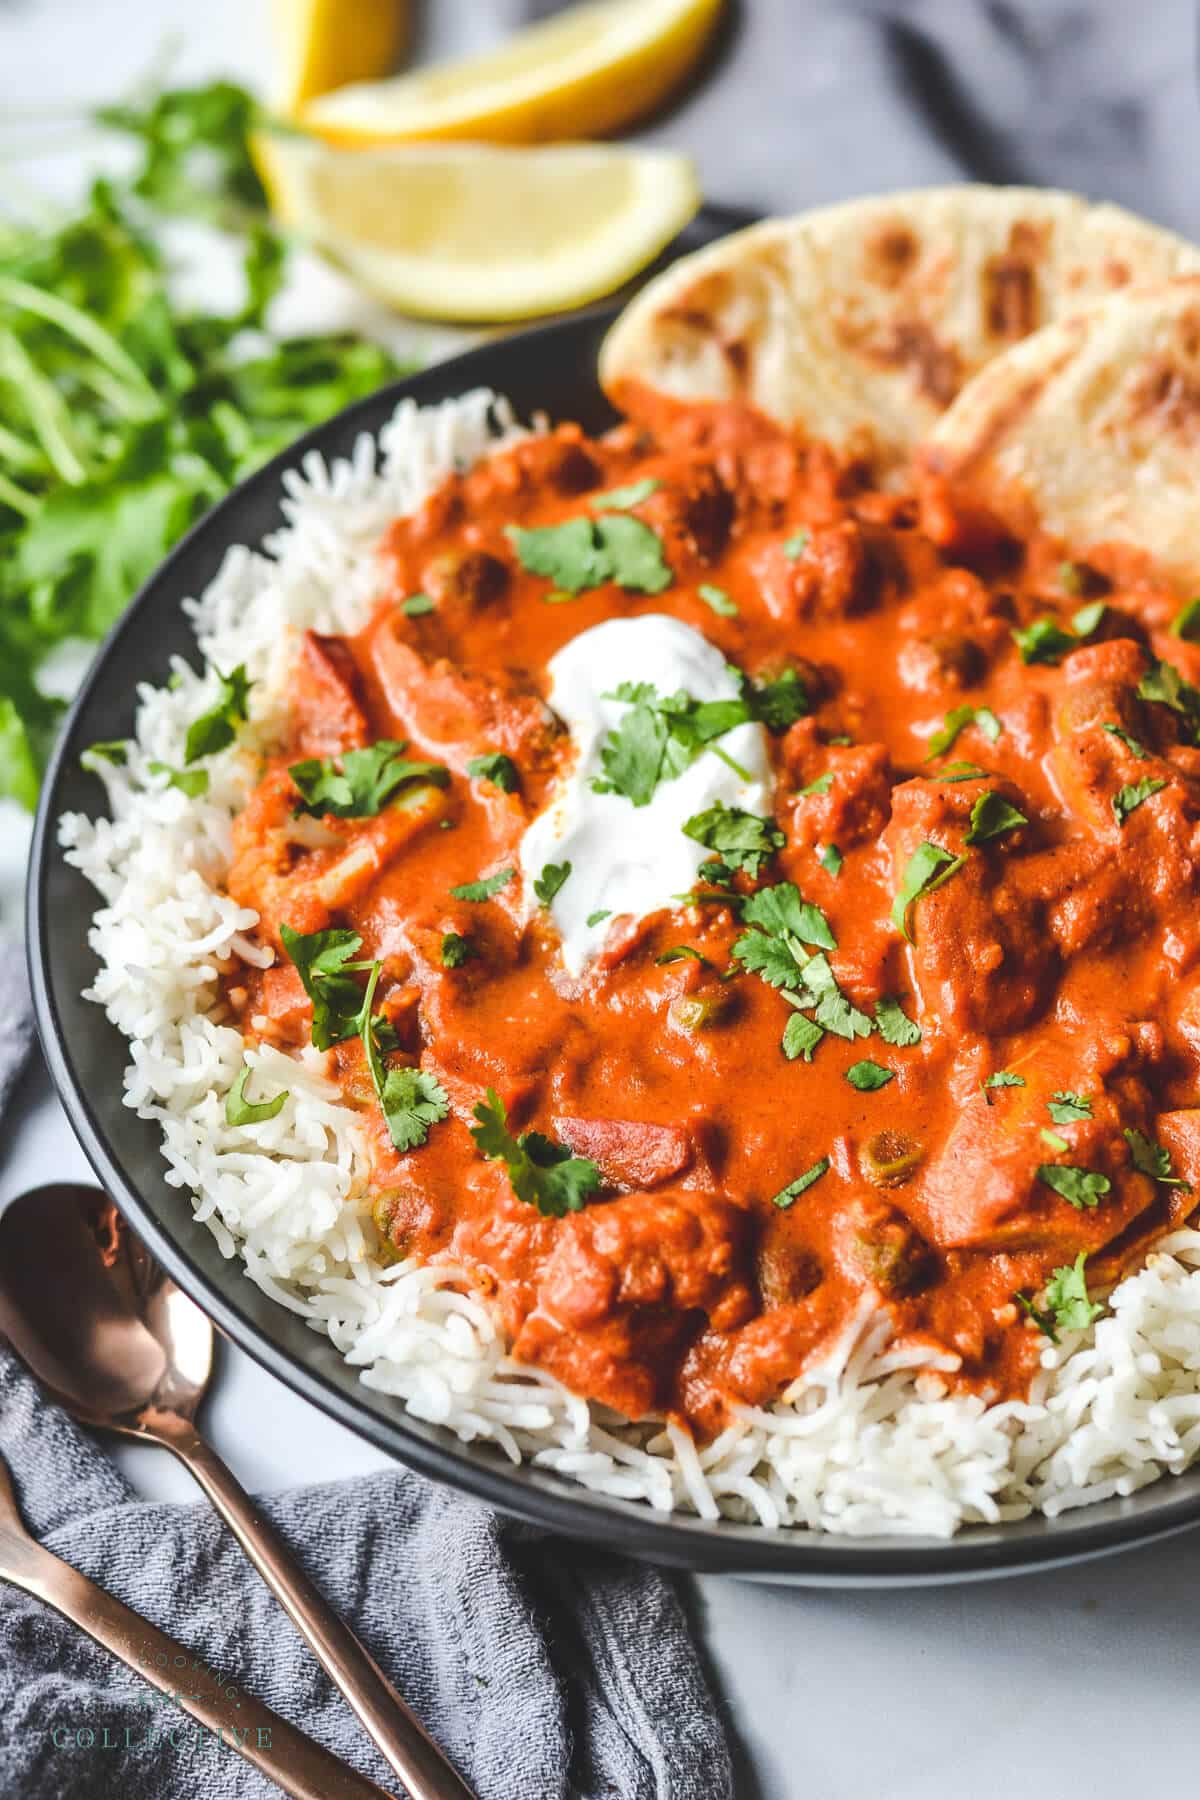 finished chicken tikka masala served over rice in a black bowl